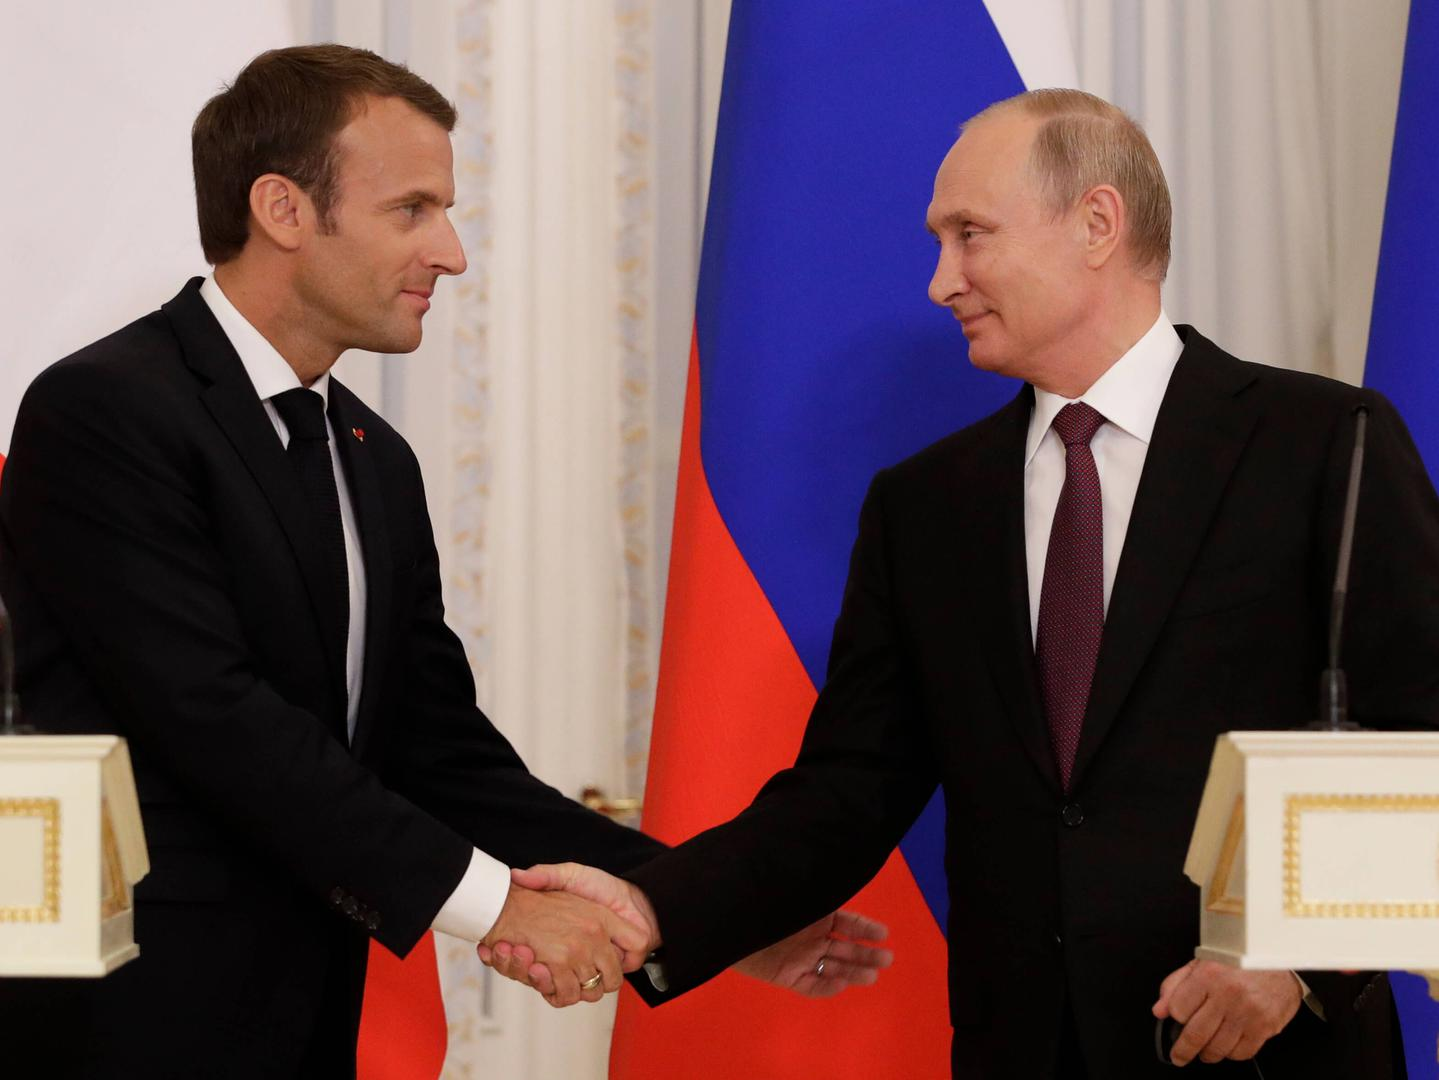 Why Macron Should Speak Frankly With Putin About Human Rights Human Rights Watch